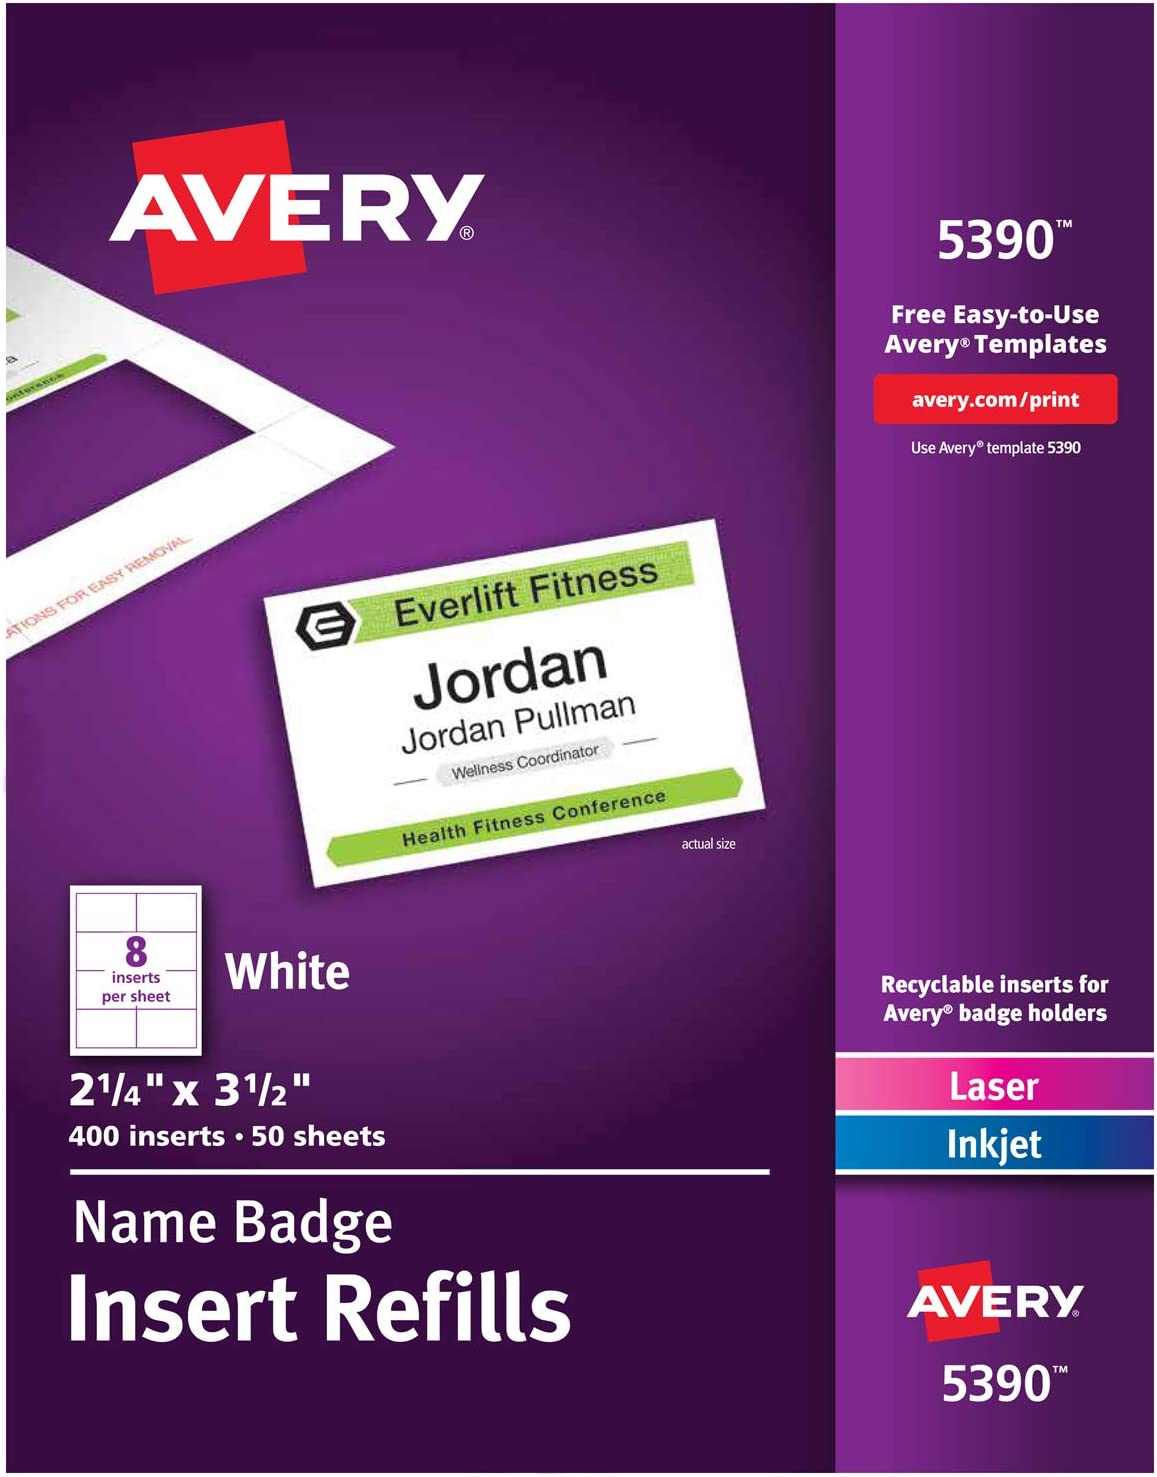 B00007LVDL Avery Name Badge Inserts, Print or Write, 2-1/4 Inch x 3-1/2 Inch, 400 Card Stock Refills (5390), White 71pOaBuLLfL